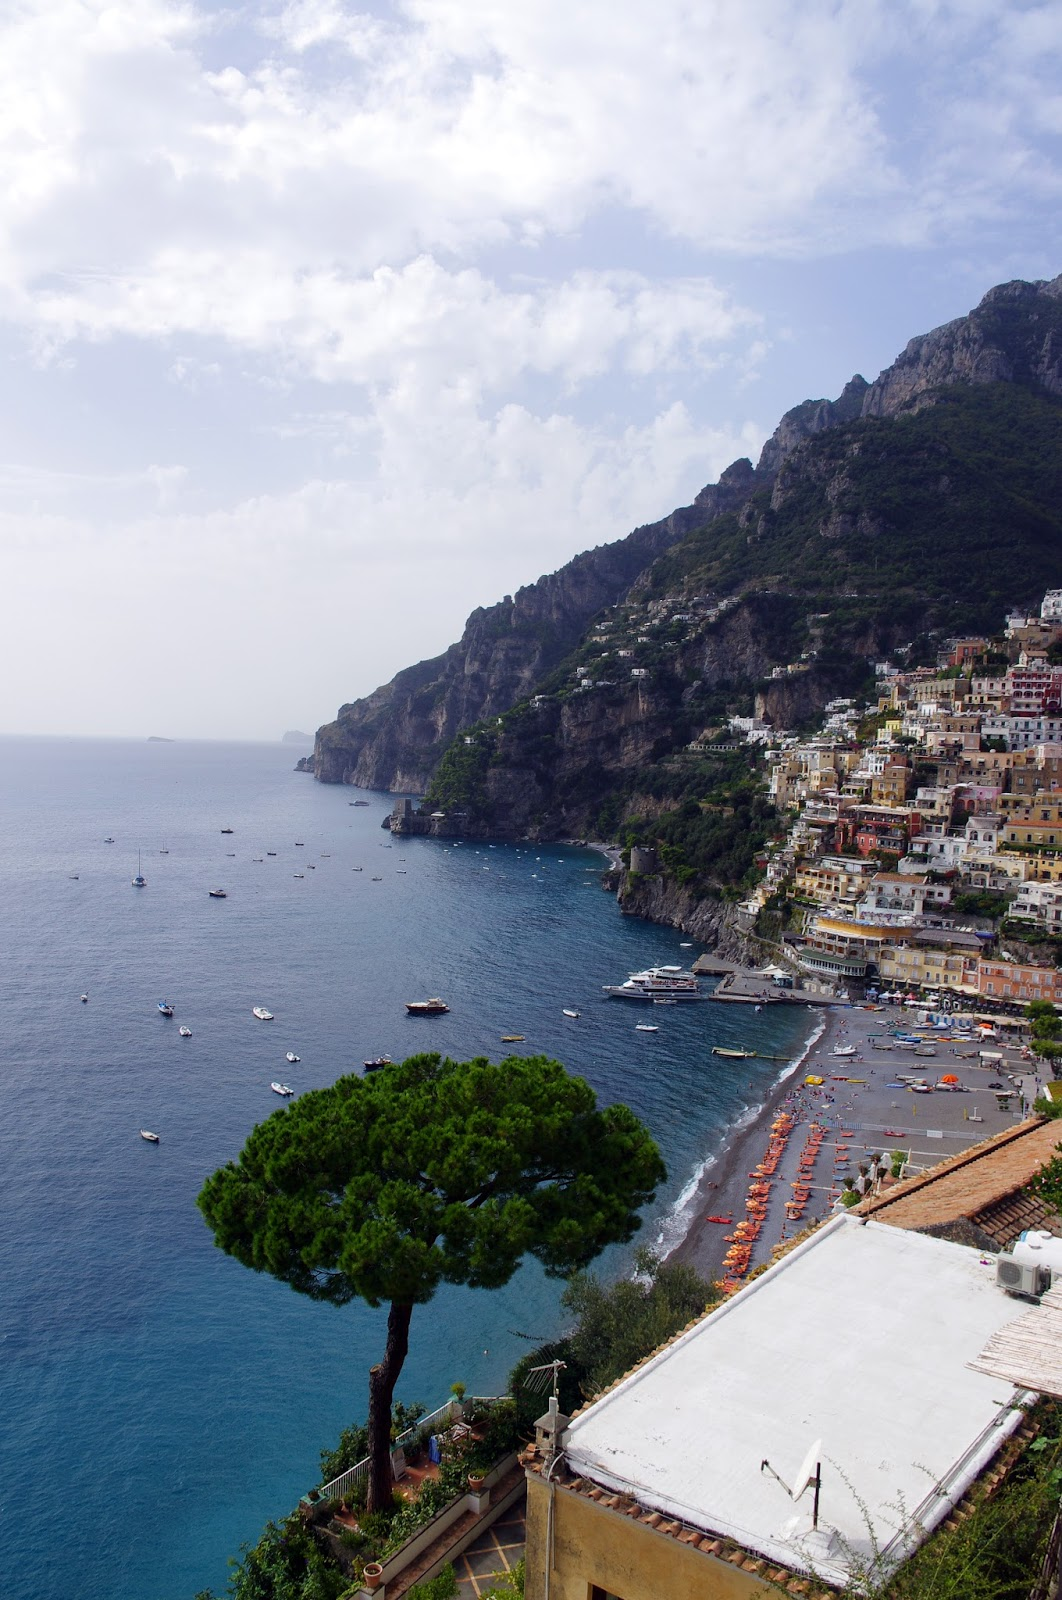 View of Positano from road